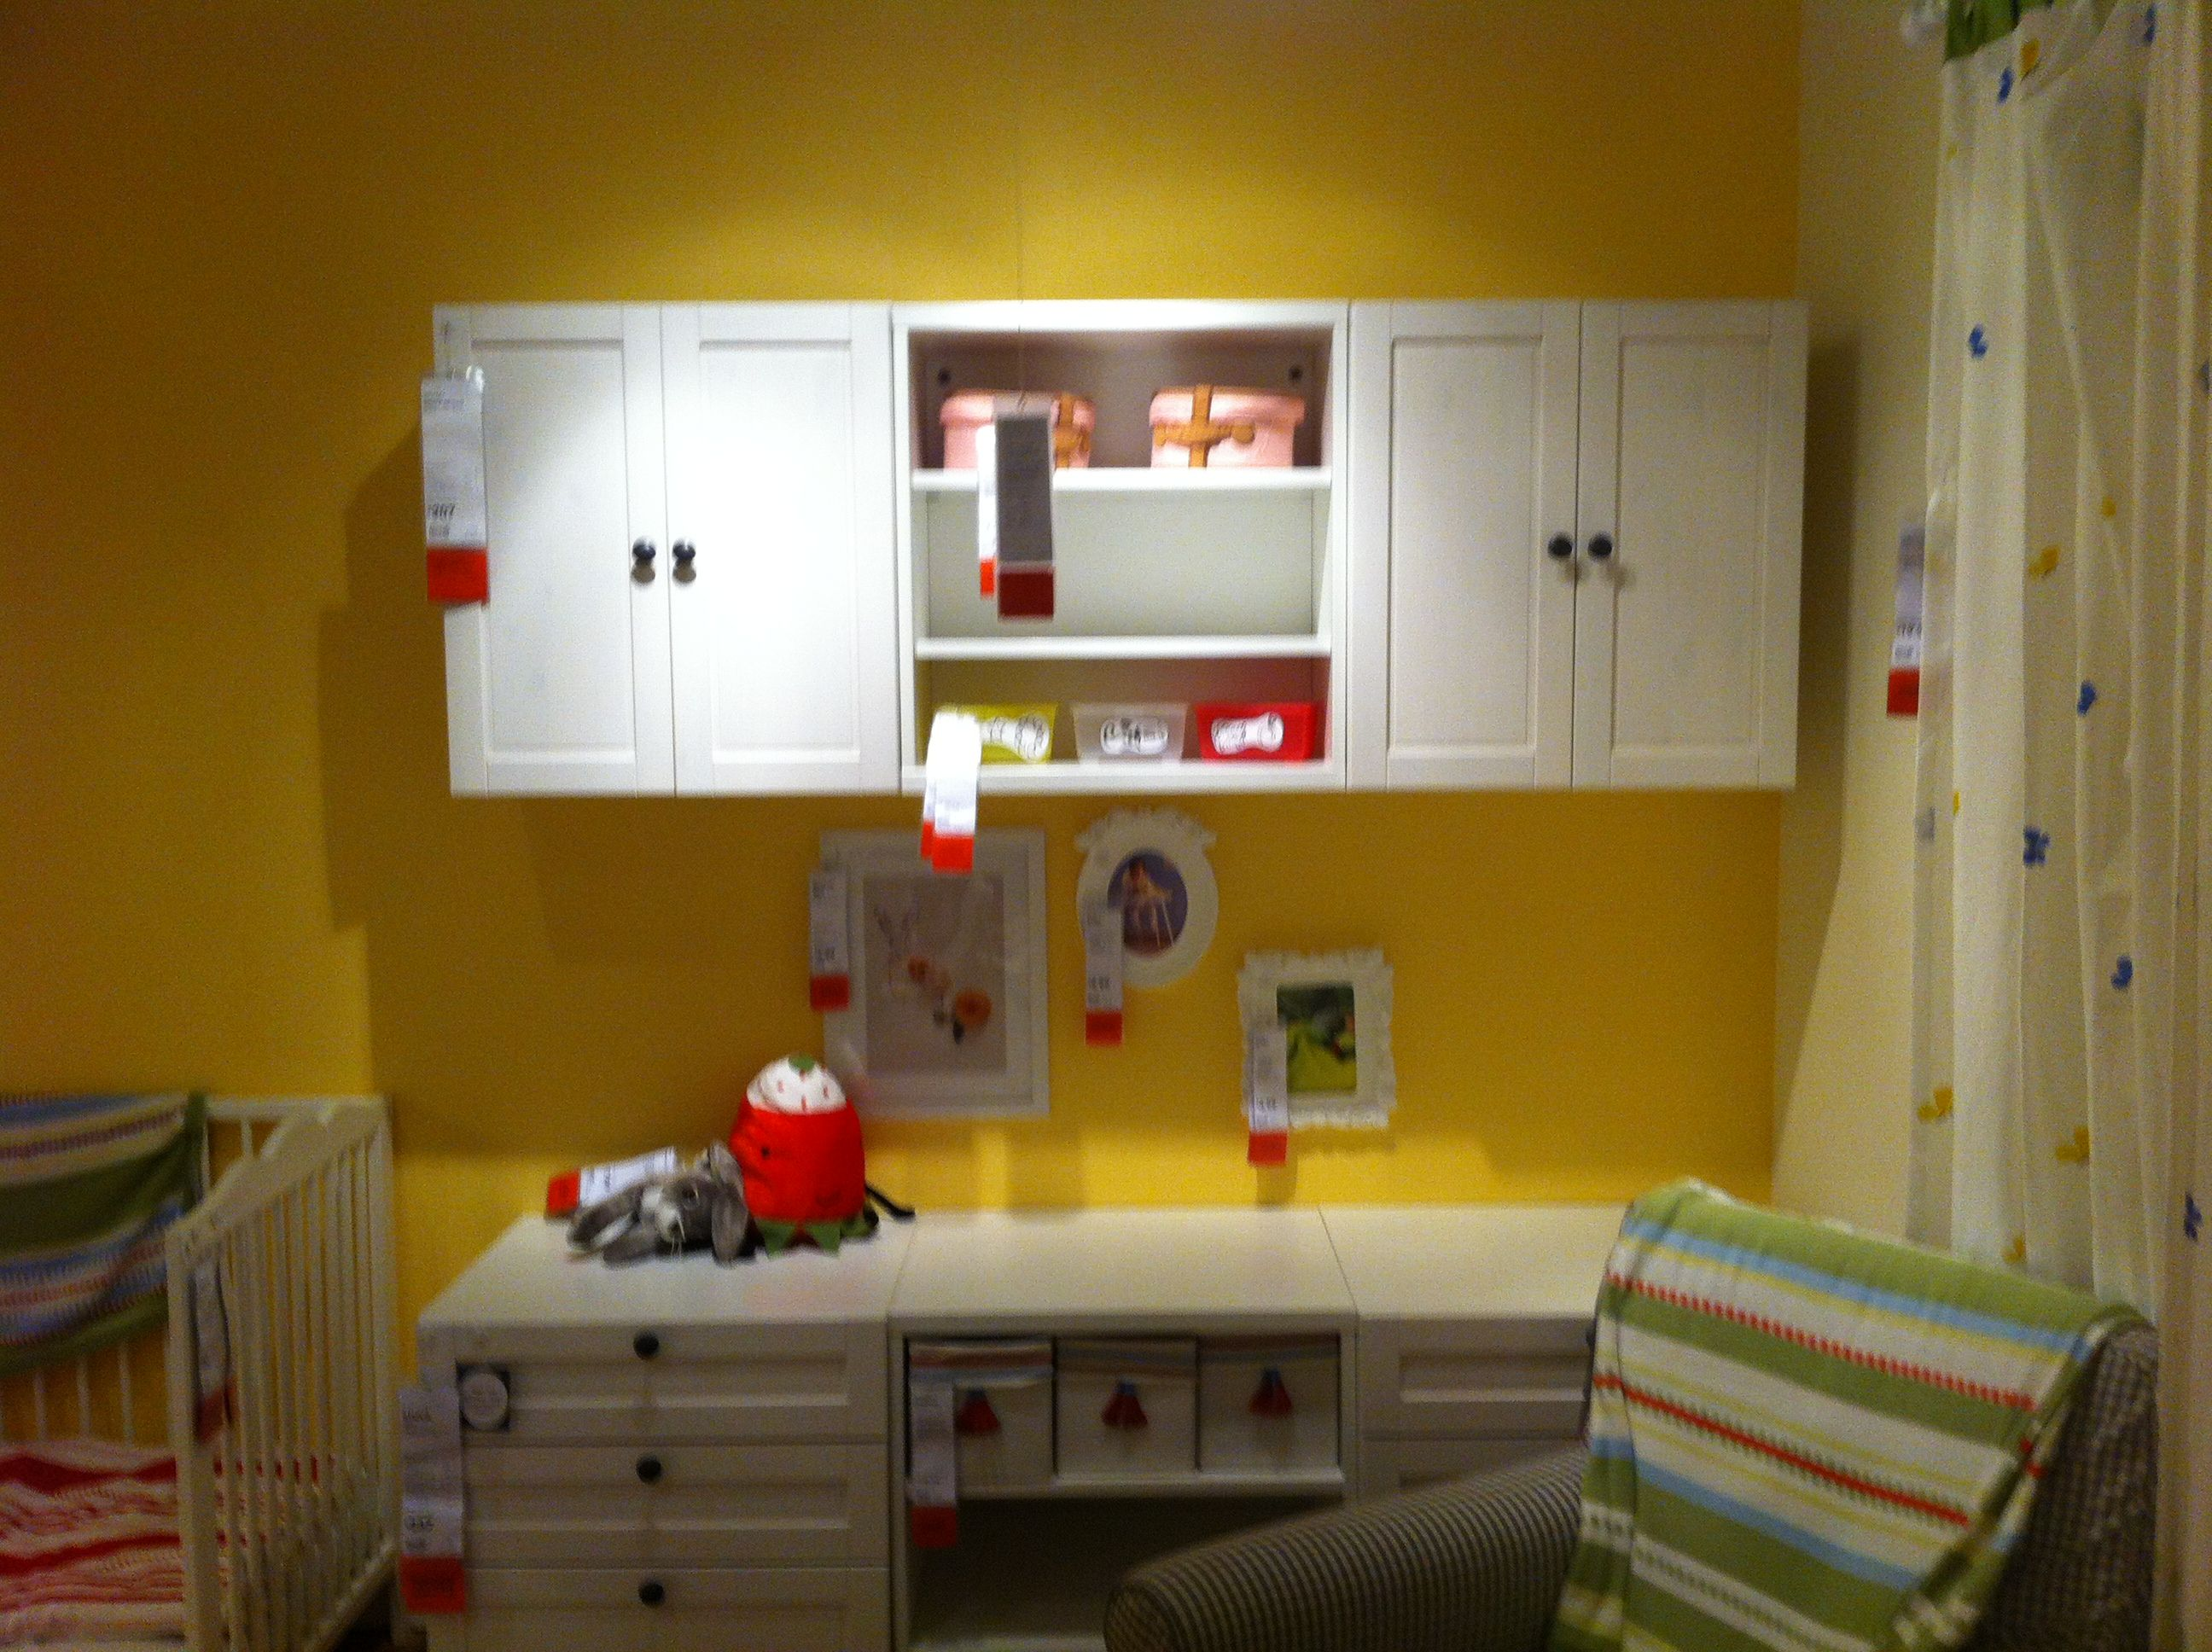 Ikea Hacks Stuva Ikea Stuva Storage Combination Organize Pinterest